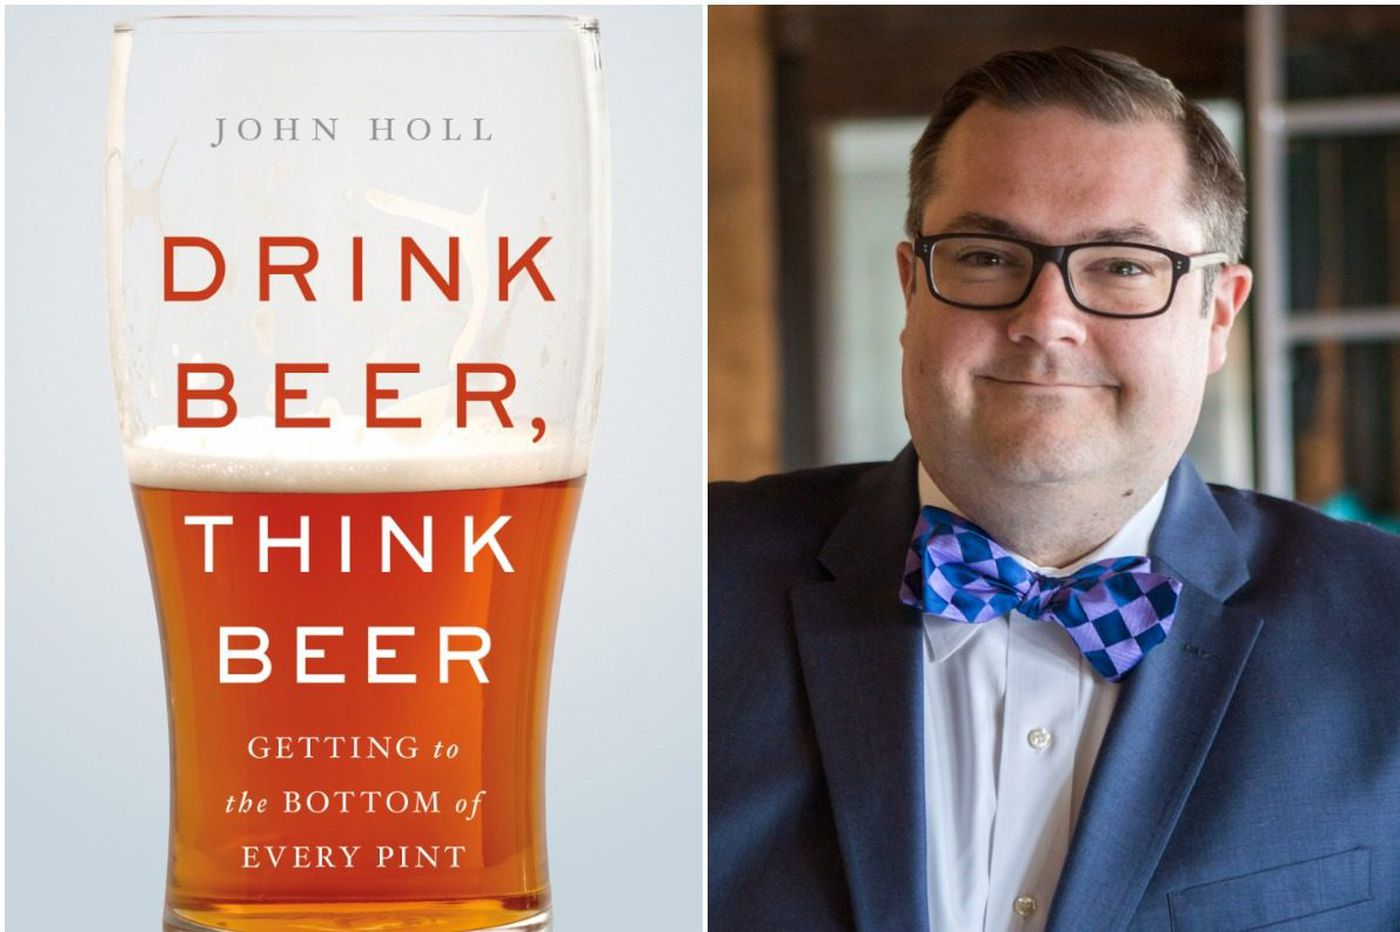 Noted beer expert joins local brew stars for panel and book event